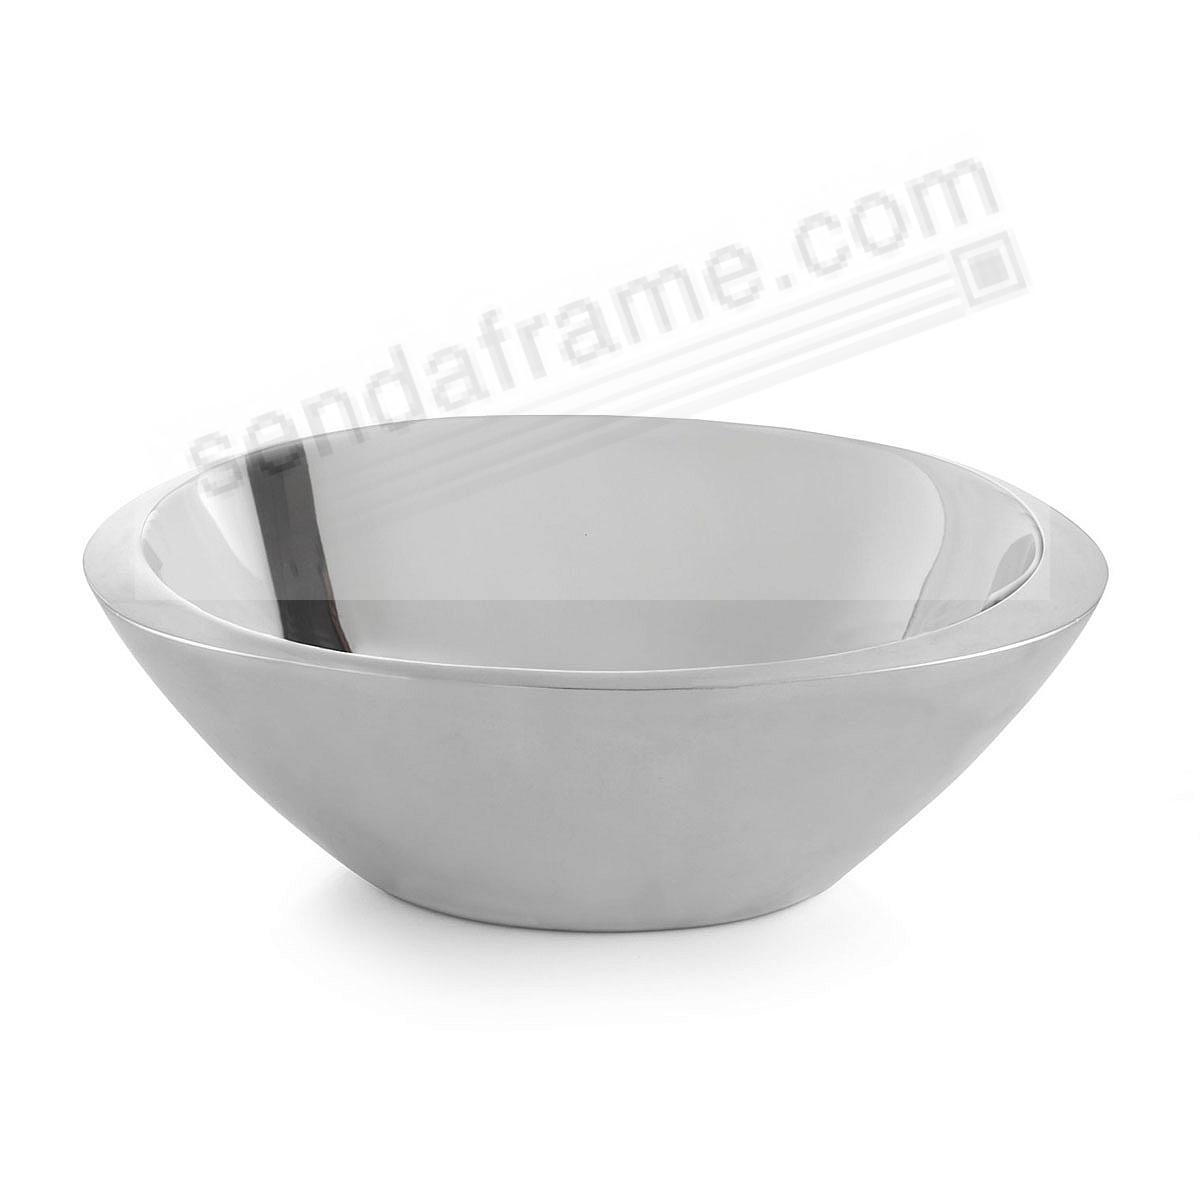 The ECLIPSE 10inch SERVING BOWL crafted by Nambe®